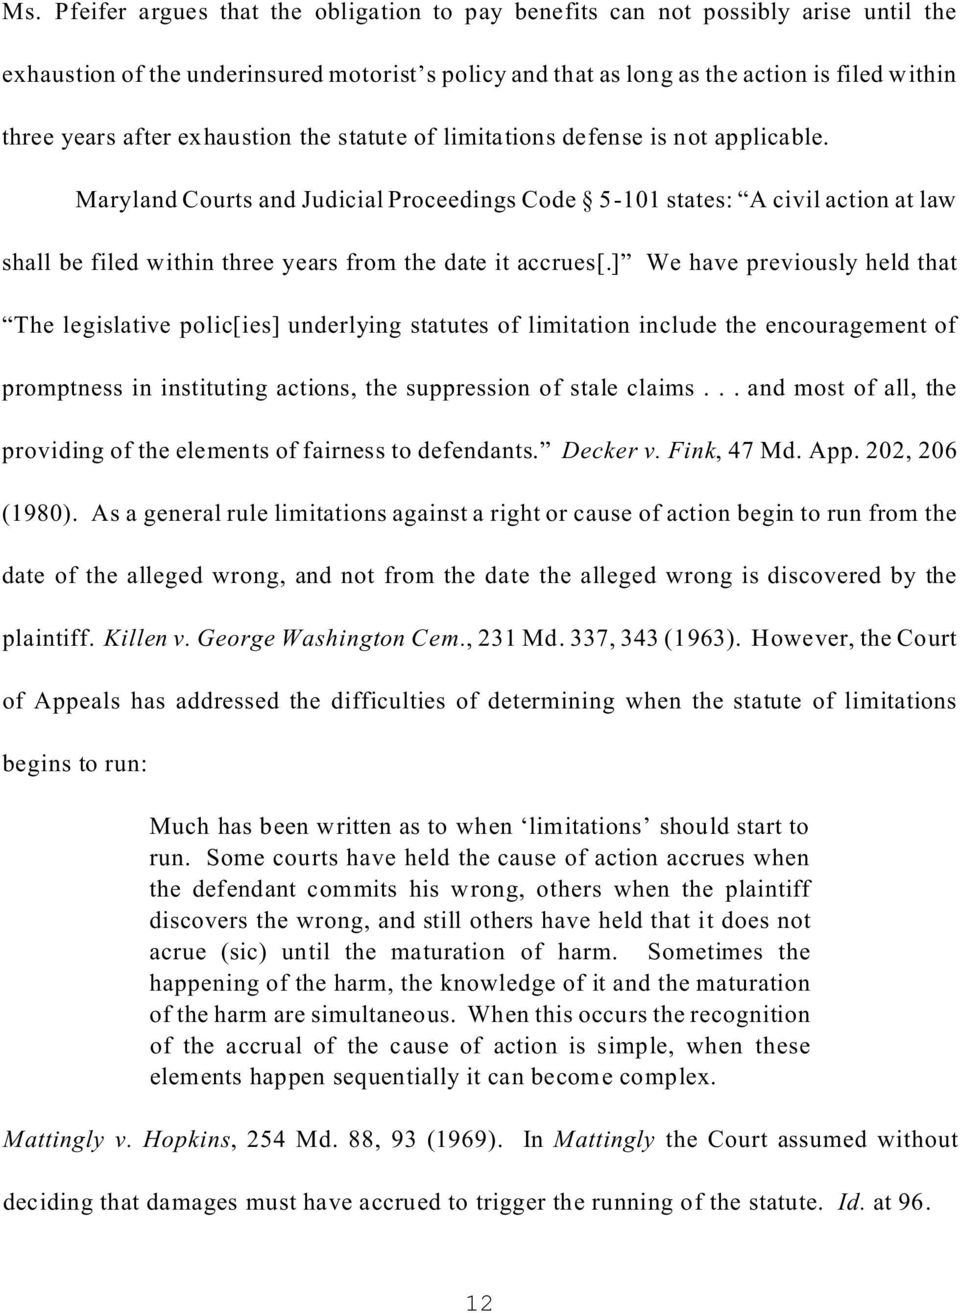 Maryland Courts and Judicial Proceedings Code 5-101 states: A civil action at law shall be filed within three years from the date it accrues[.